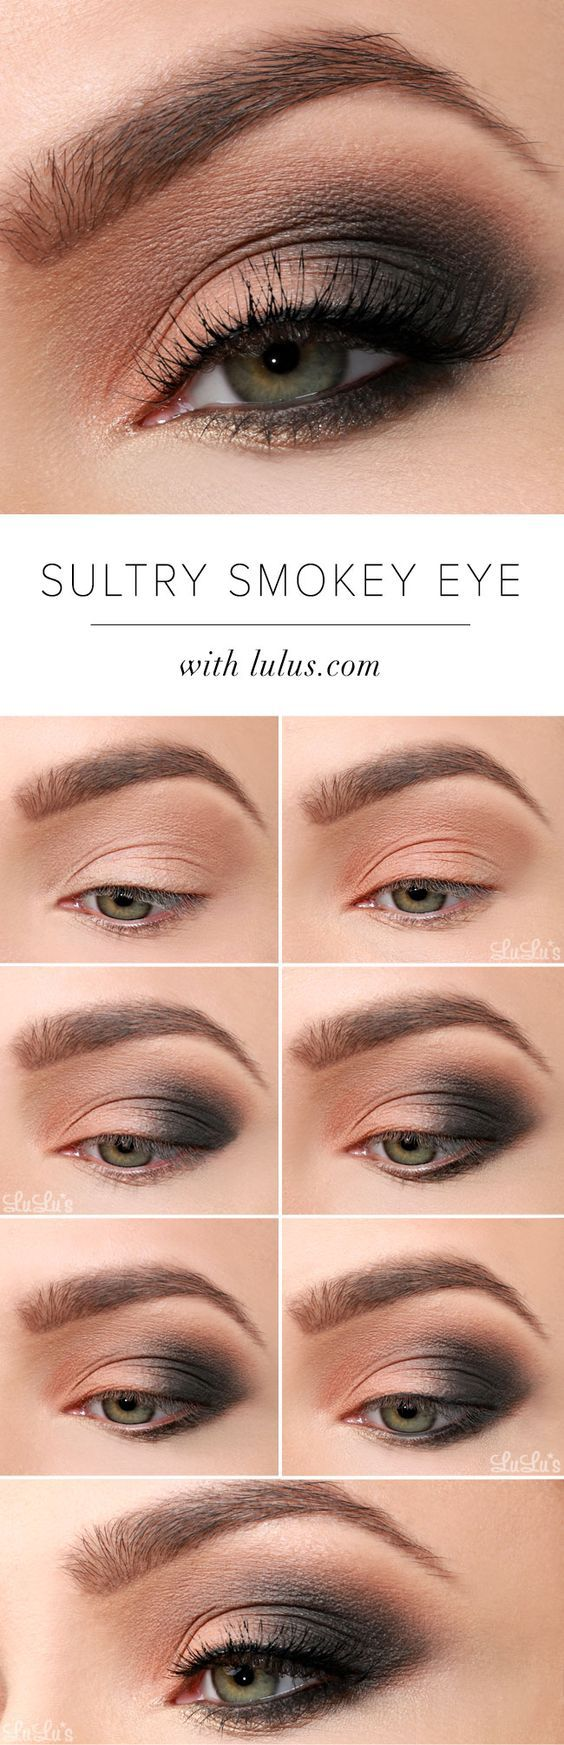 Lulus Howto: Sultry Smokey Eye Makeup Tutorial